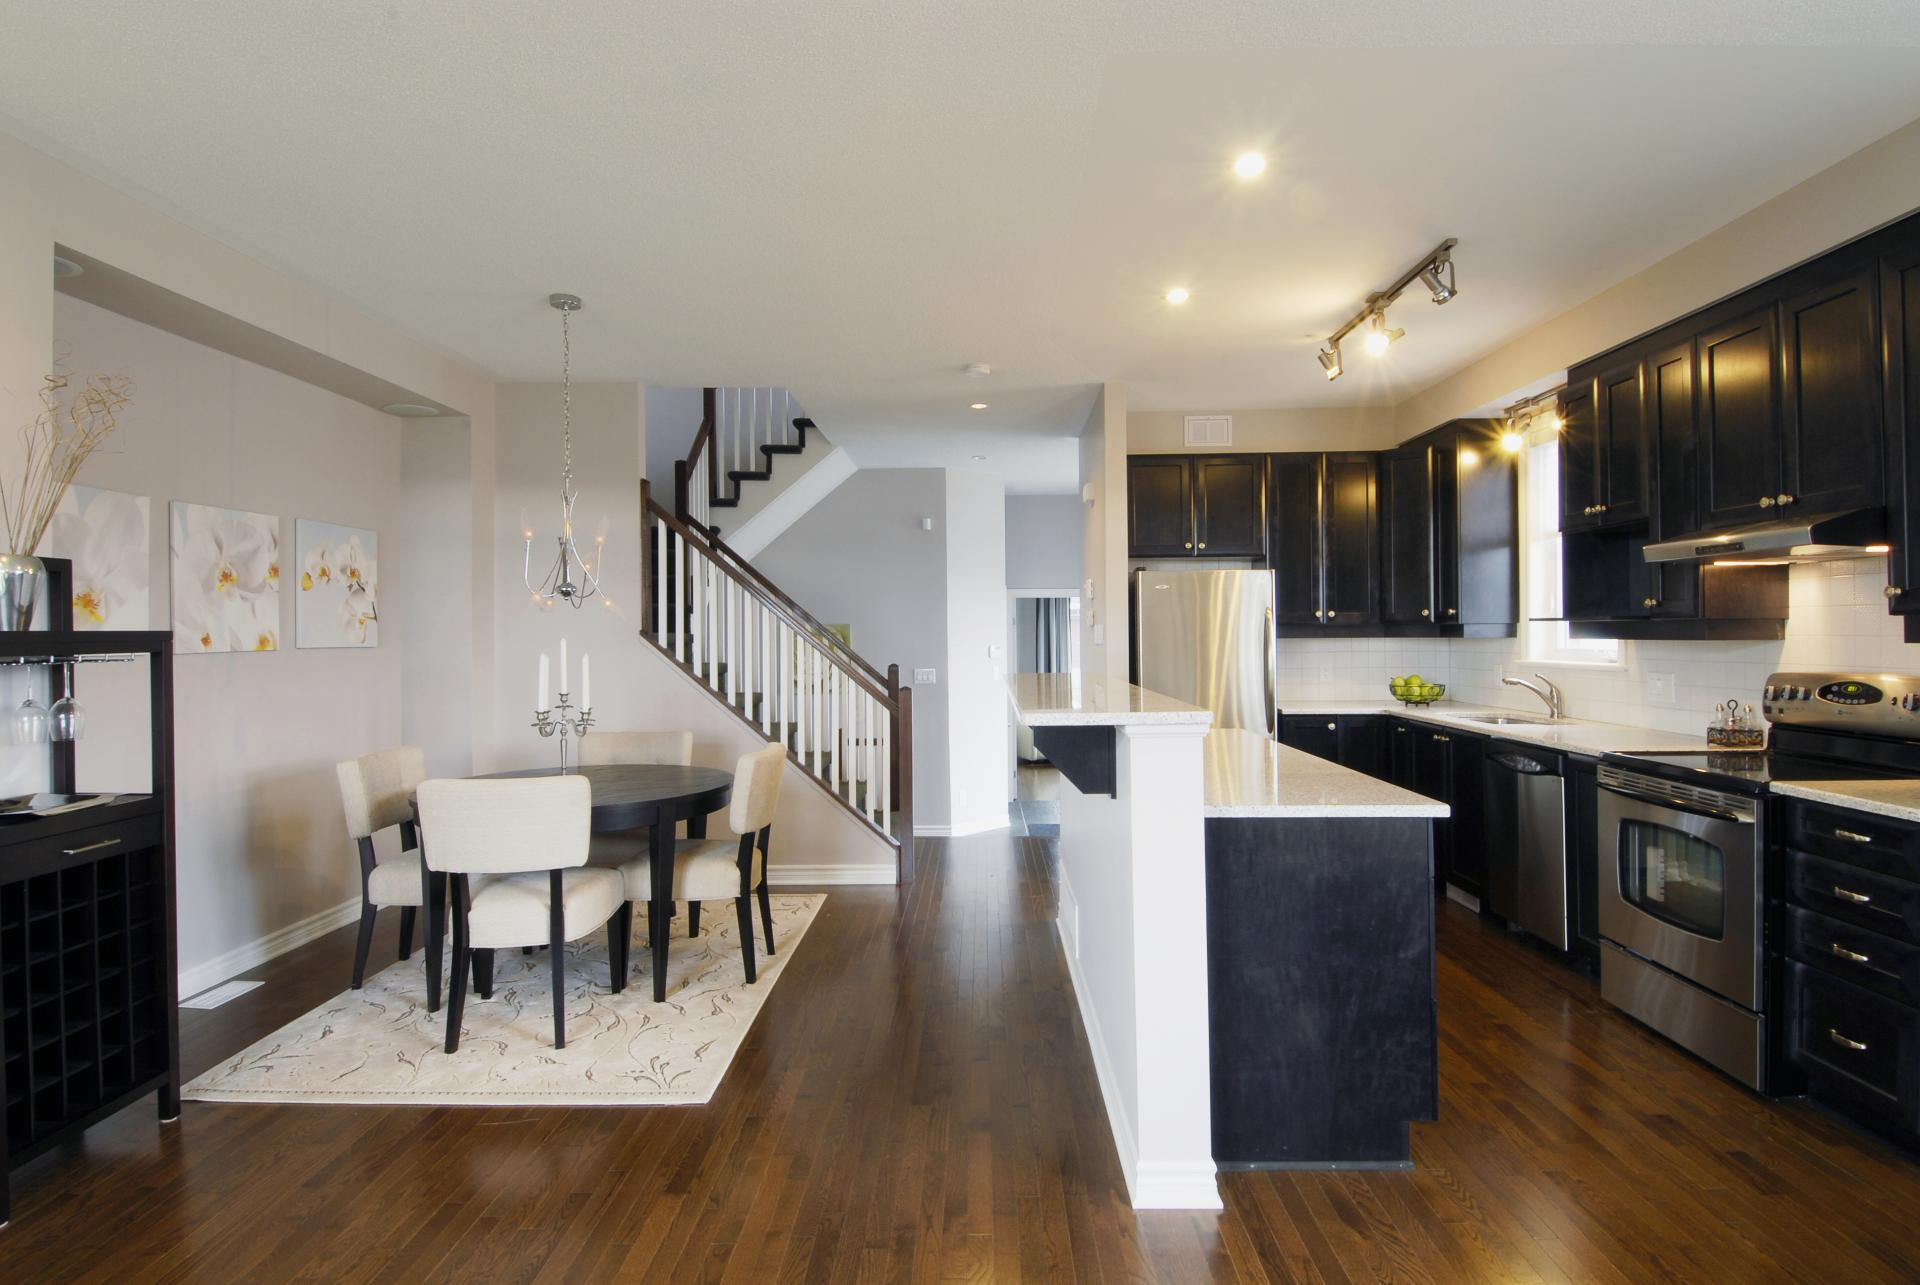 Jamison 3 Bedroom New Townhome Ottawa New Townhomes For Sale Math Wallpaper Golden Find Free HD for Desktop [pastnedes.tk]